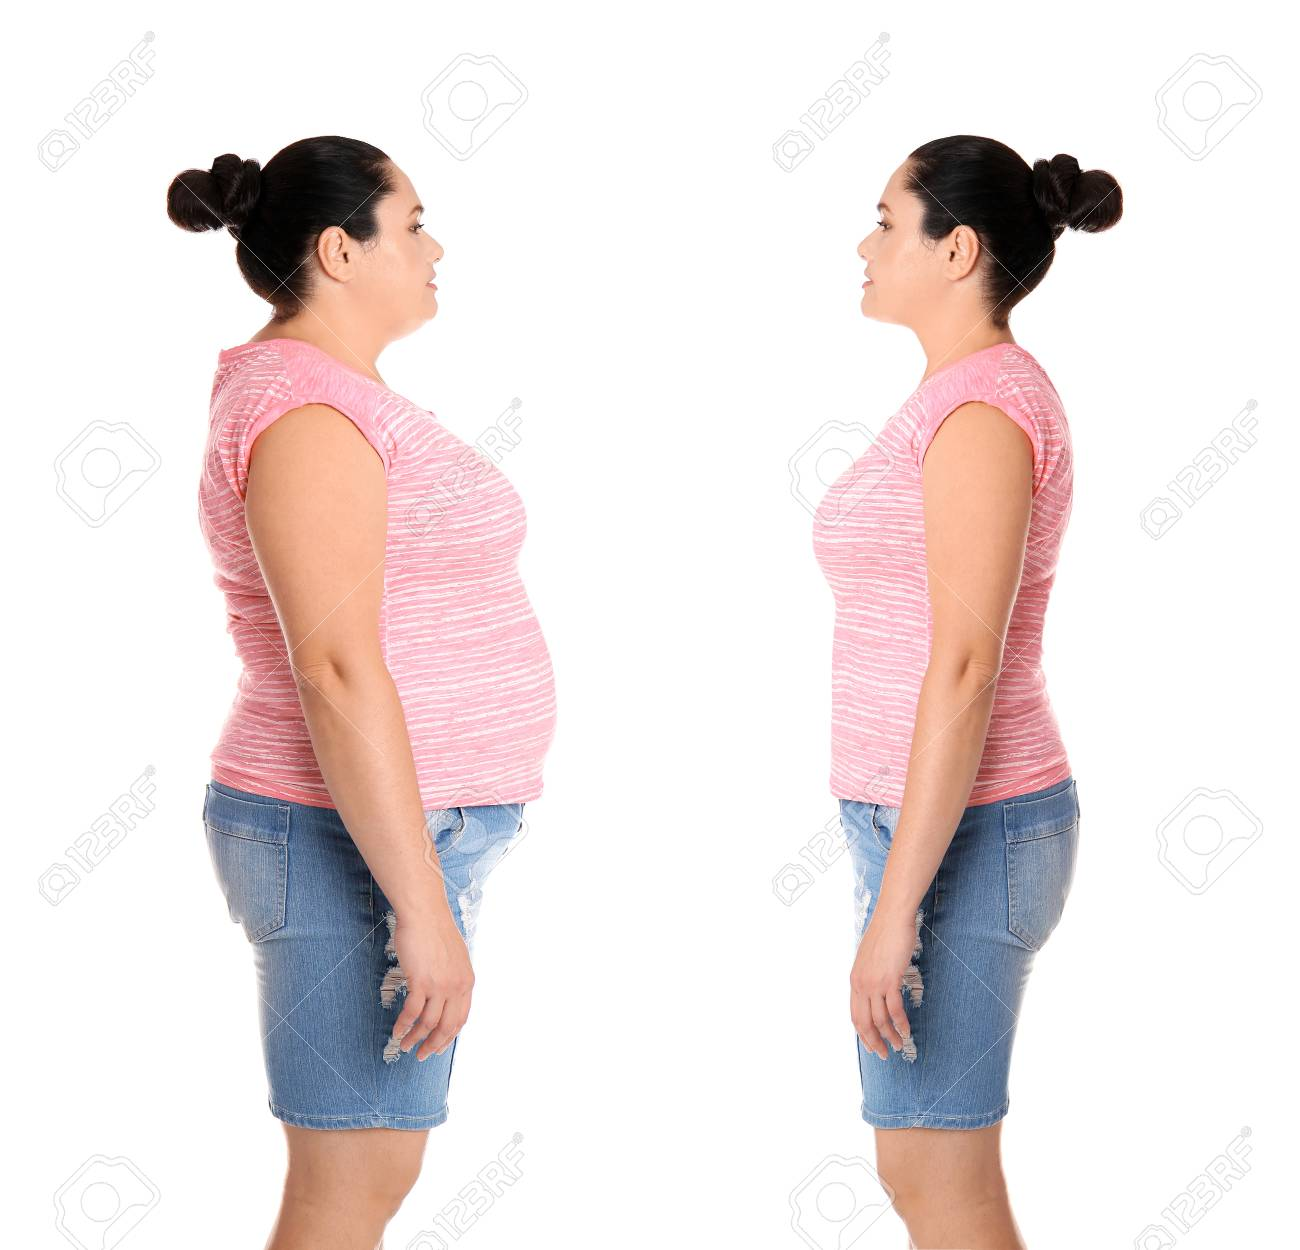 Overweight Woman Before And After Weight Loss On White Background 1300x1250